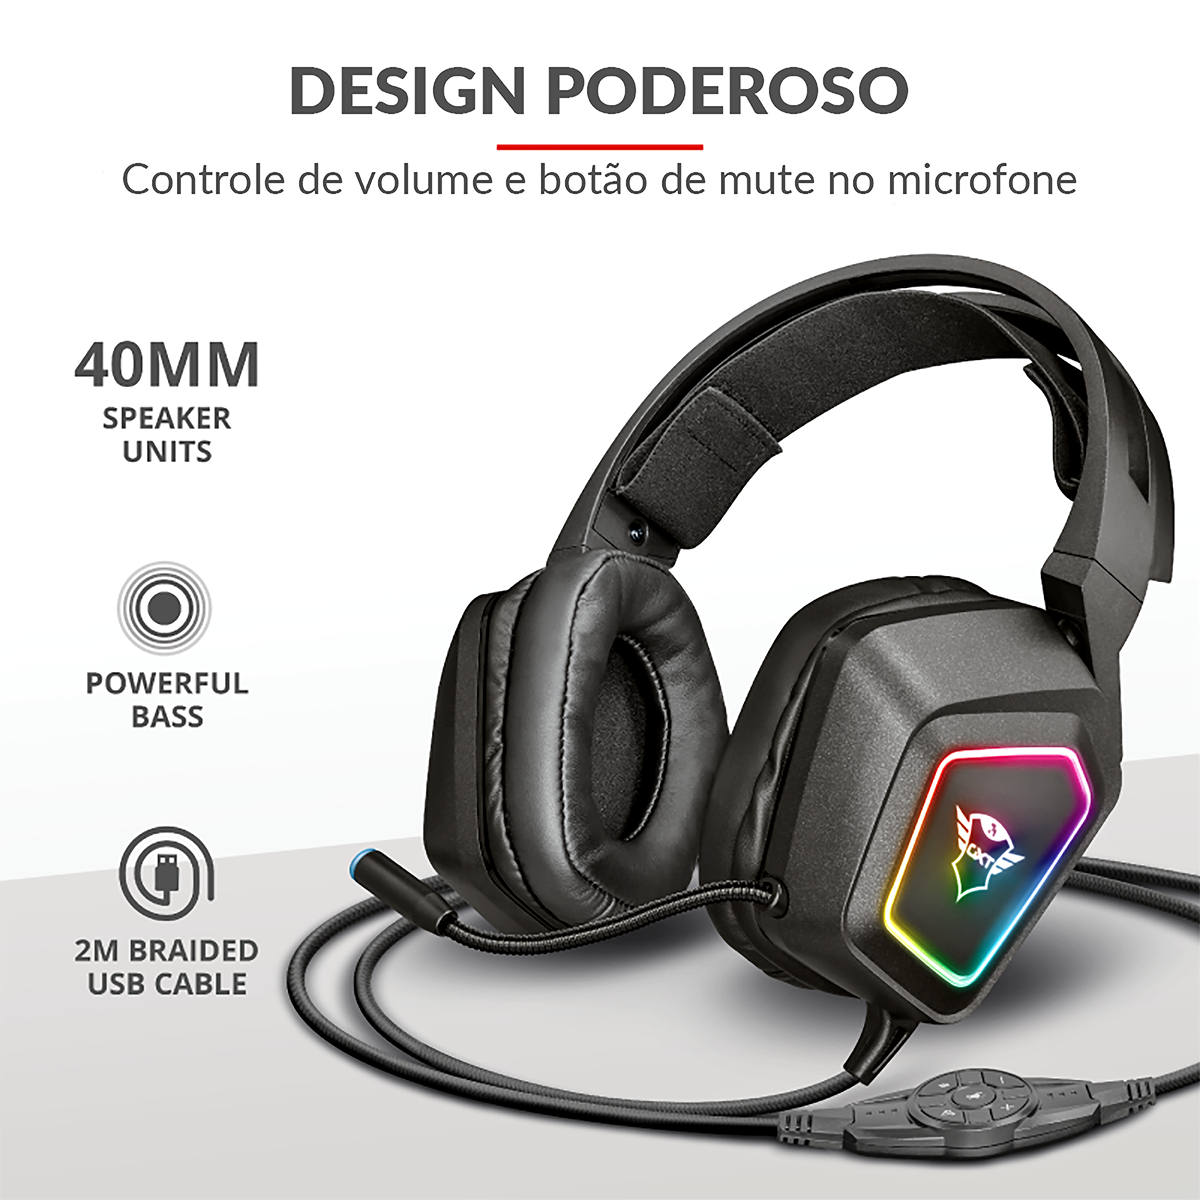 Headset Gamer 7.1 Surround Alta Fidelidade Sonora e Graves Potentes RGB Trust Blizz GXT-450 Gaming